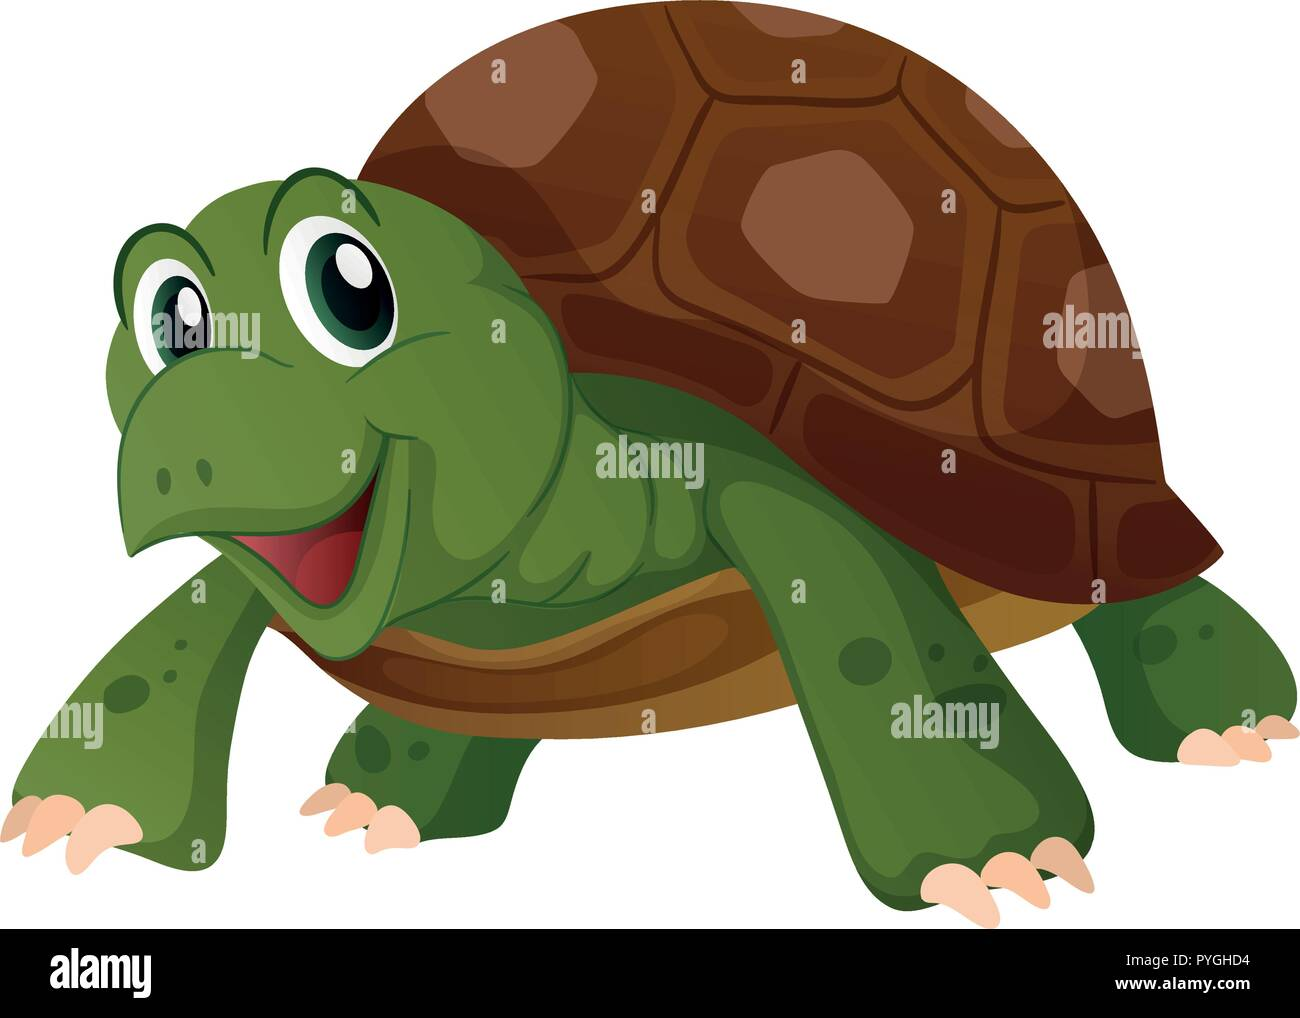 Cute Turtle With Happy Face Illustration Stock Vector Image Art